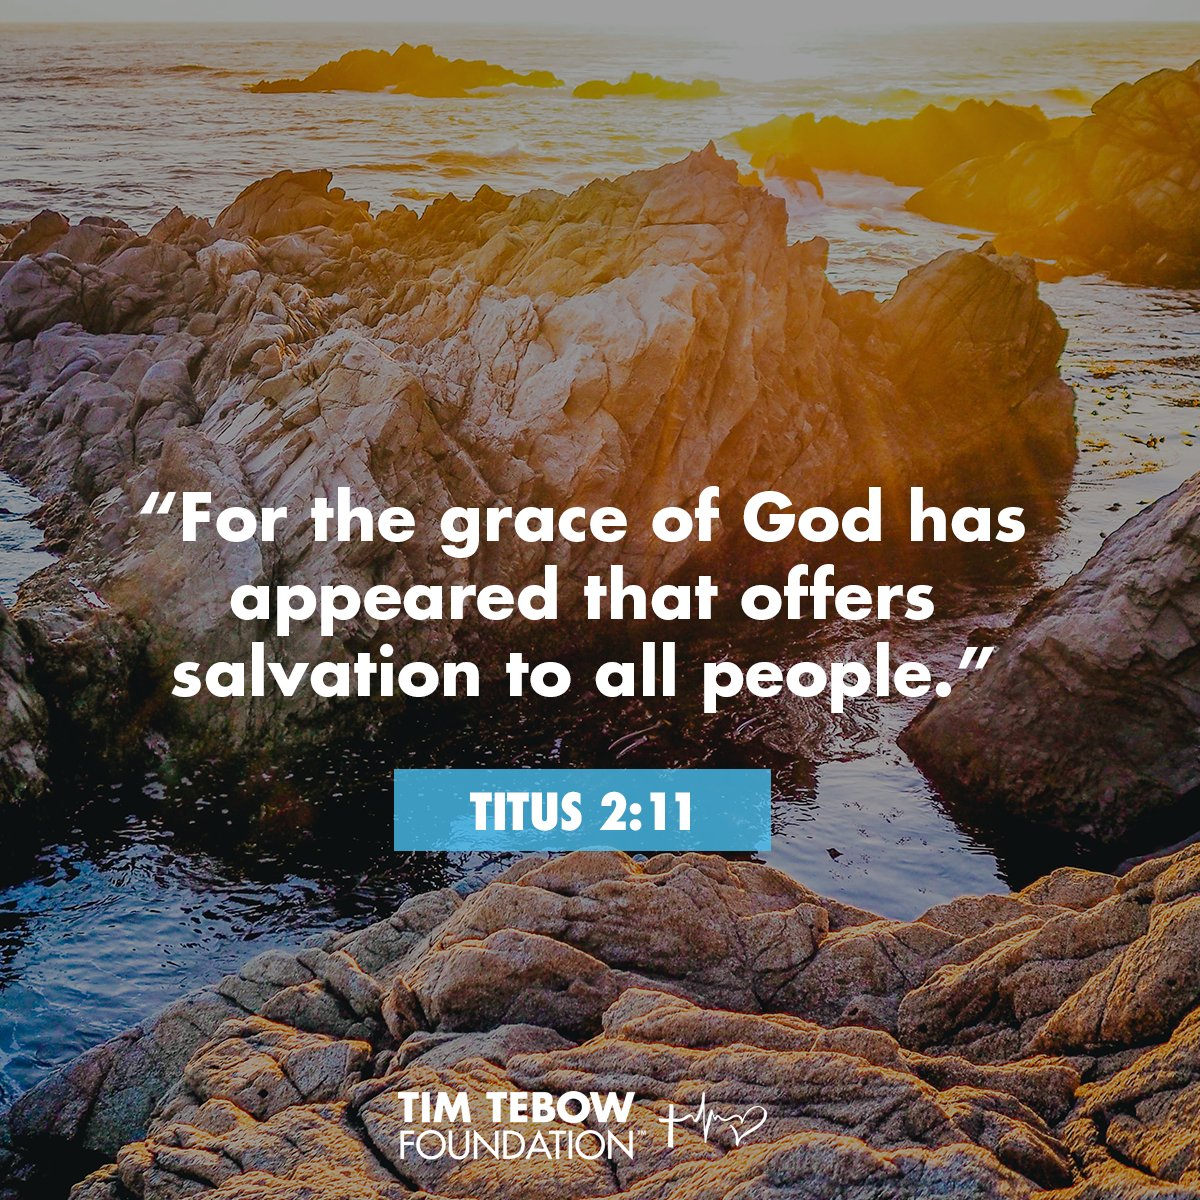 """""""For the grace of God has appeared that offers salvation to all people.""""—Titus 2:11 #verse #scripture #TimTebowFoundation pic.twitter.com/BK1f82UPR9"""